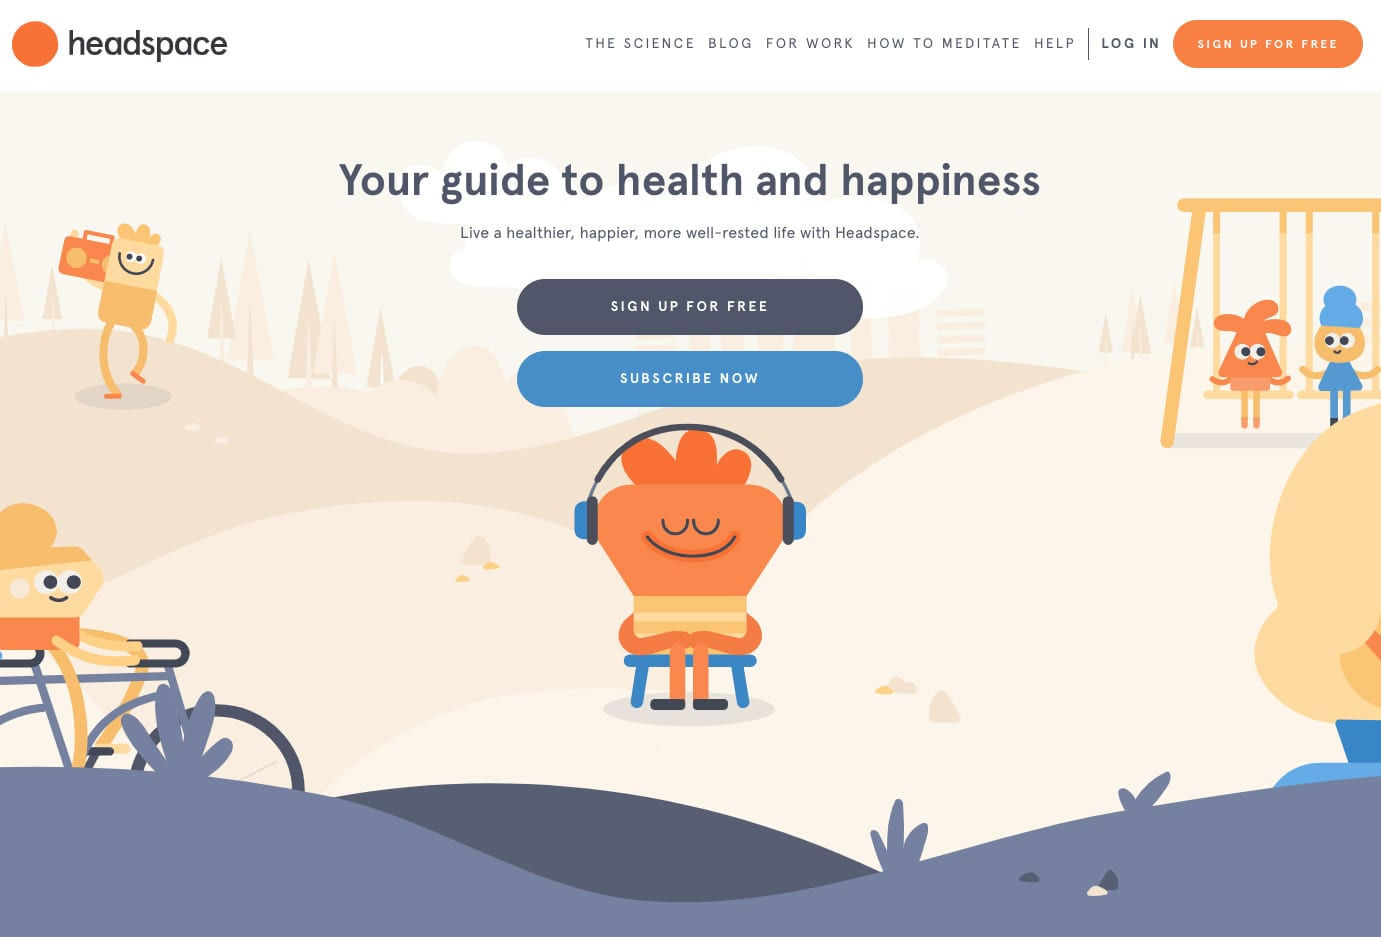 Email design review: headspace